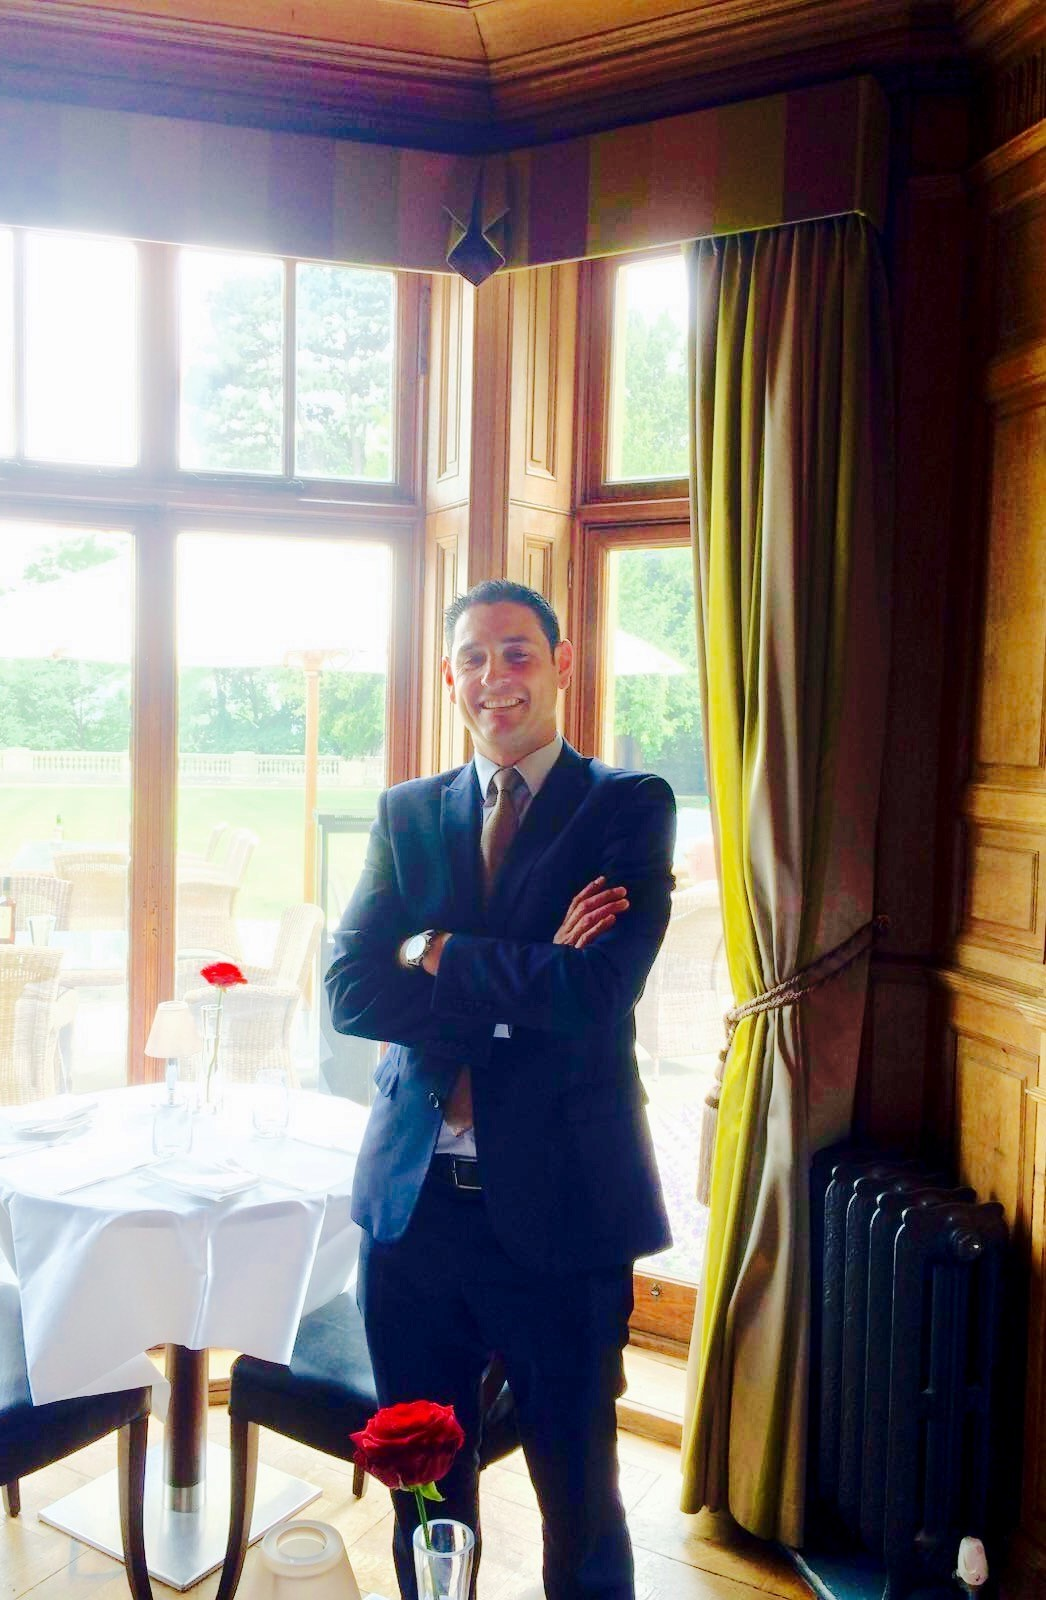 NEW: The Wood Norton's new food and beverage manager Jorge Pereira.